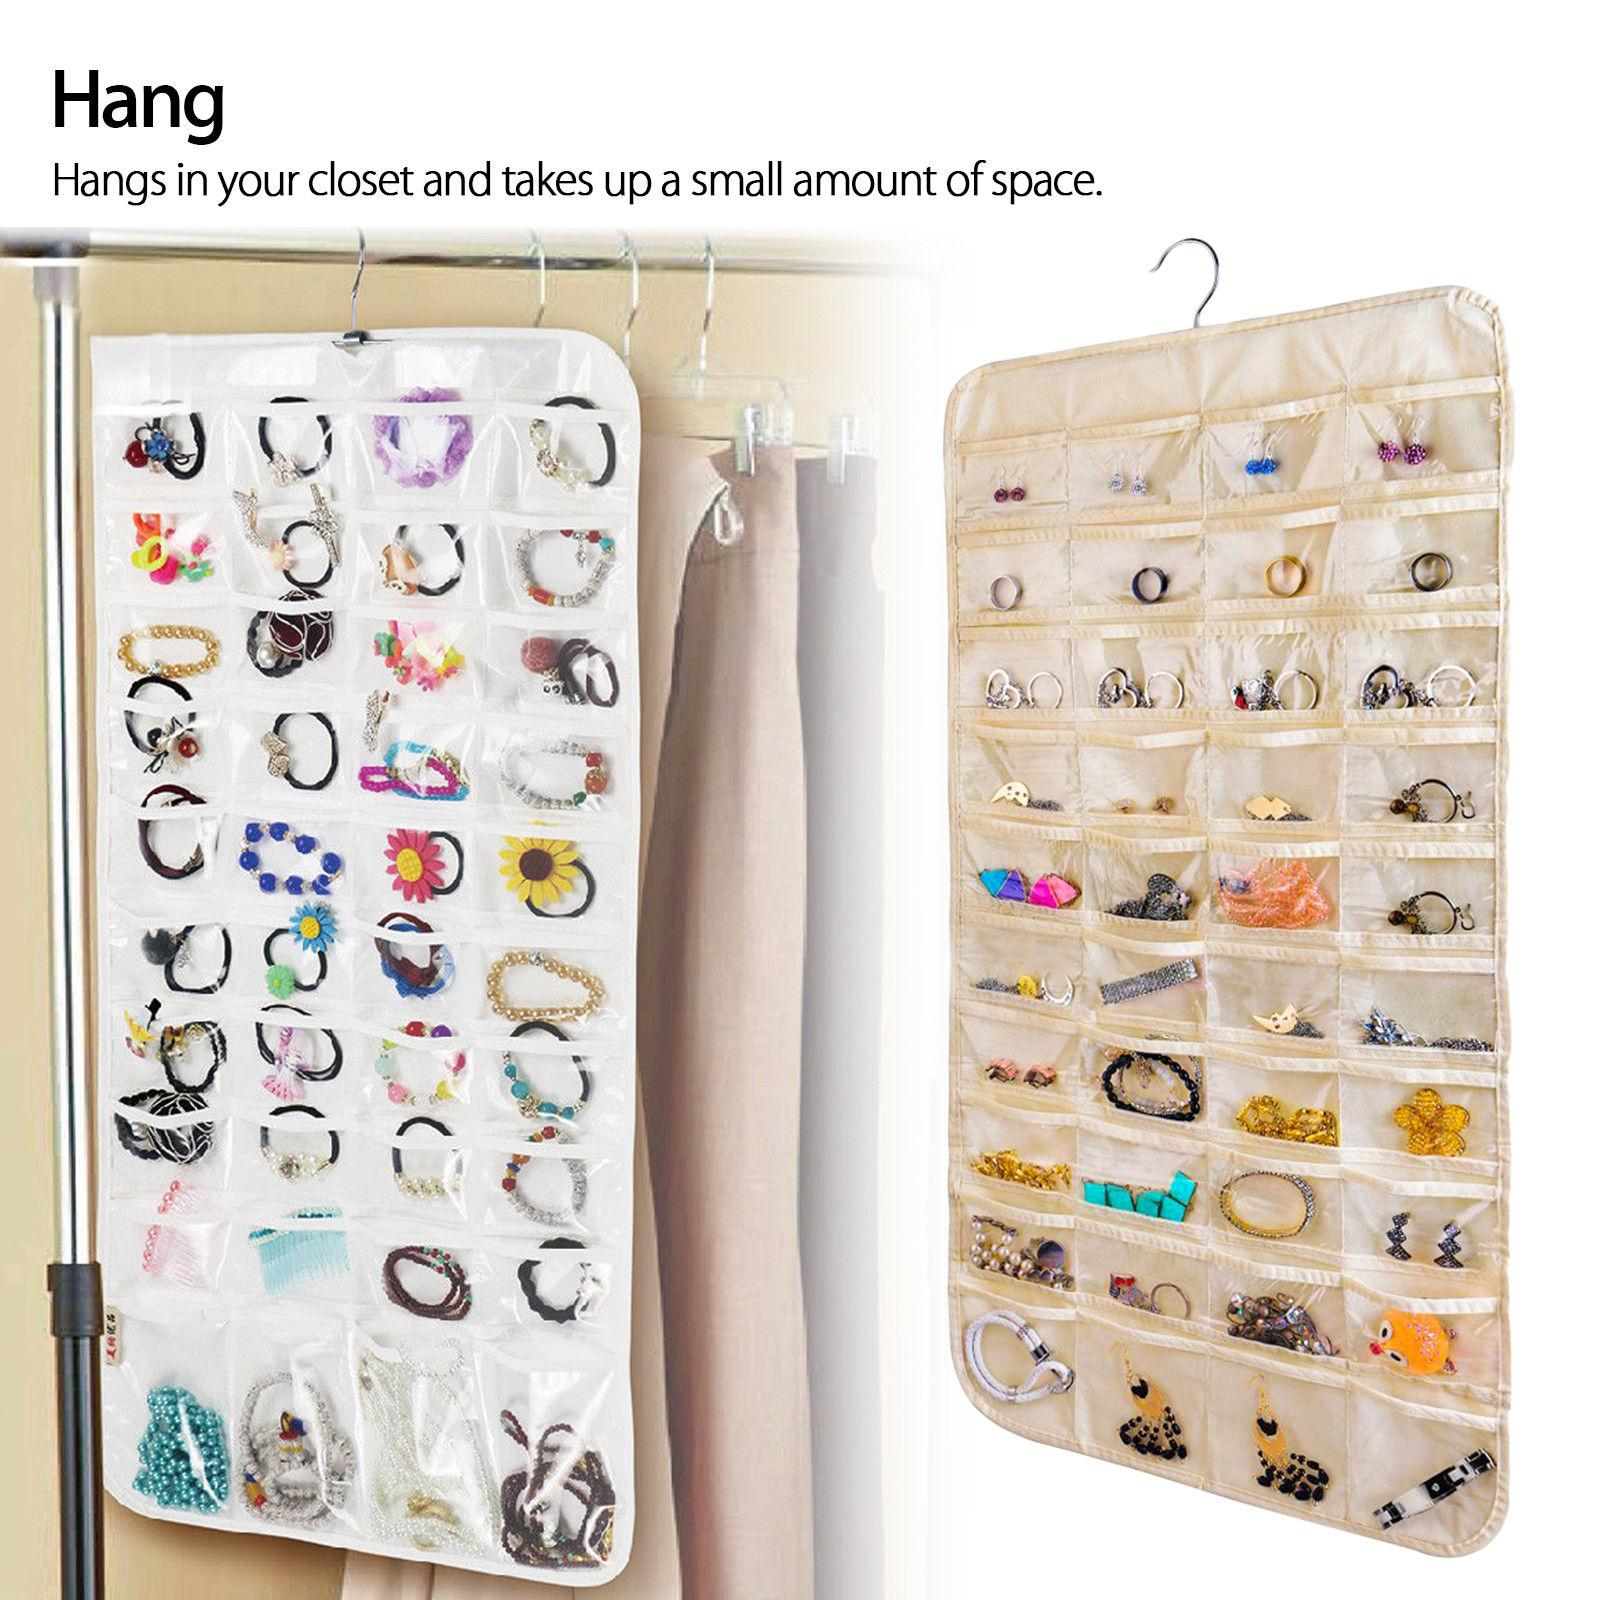 2018 Pvc 80 Pocket Jewelry Wall Hanging Storage Organizer Collapsible  Holder Earring Bag Pouch With Hook Aaa512 From Liangjingjing_no3, $7.32 |  Dhgate.Com